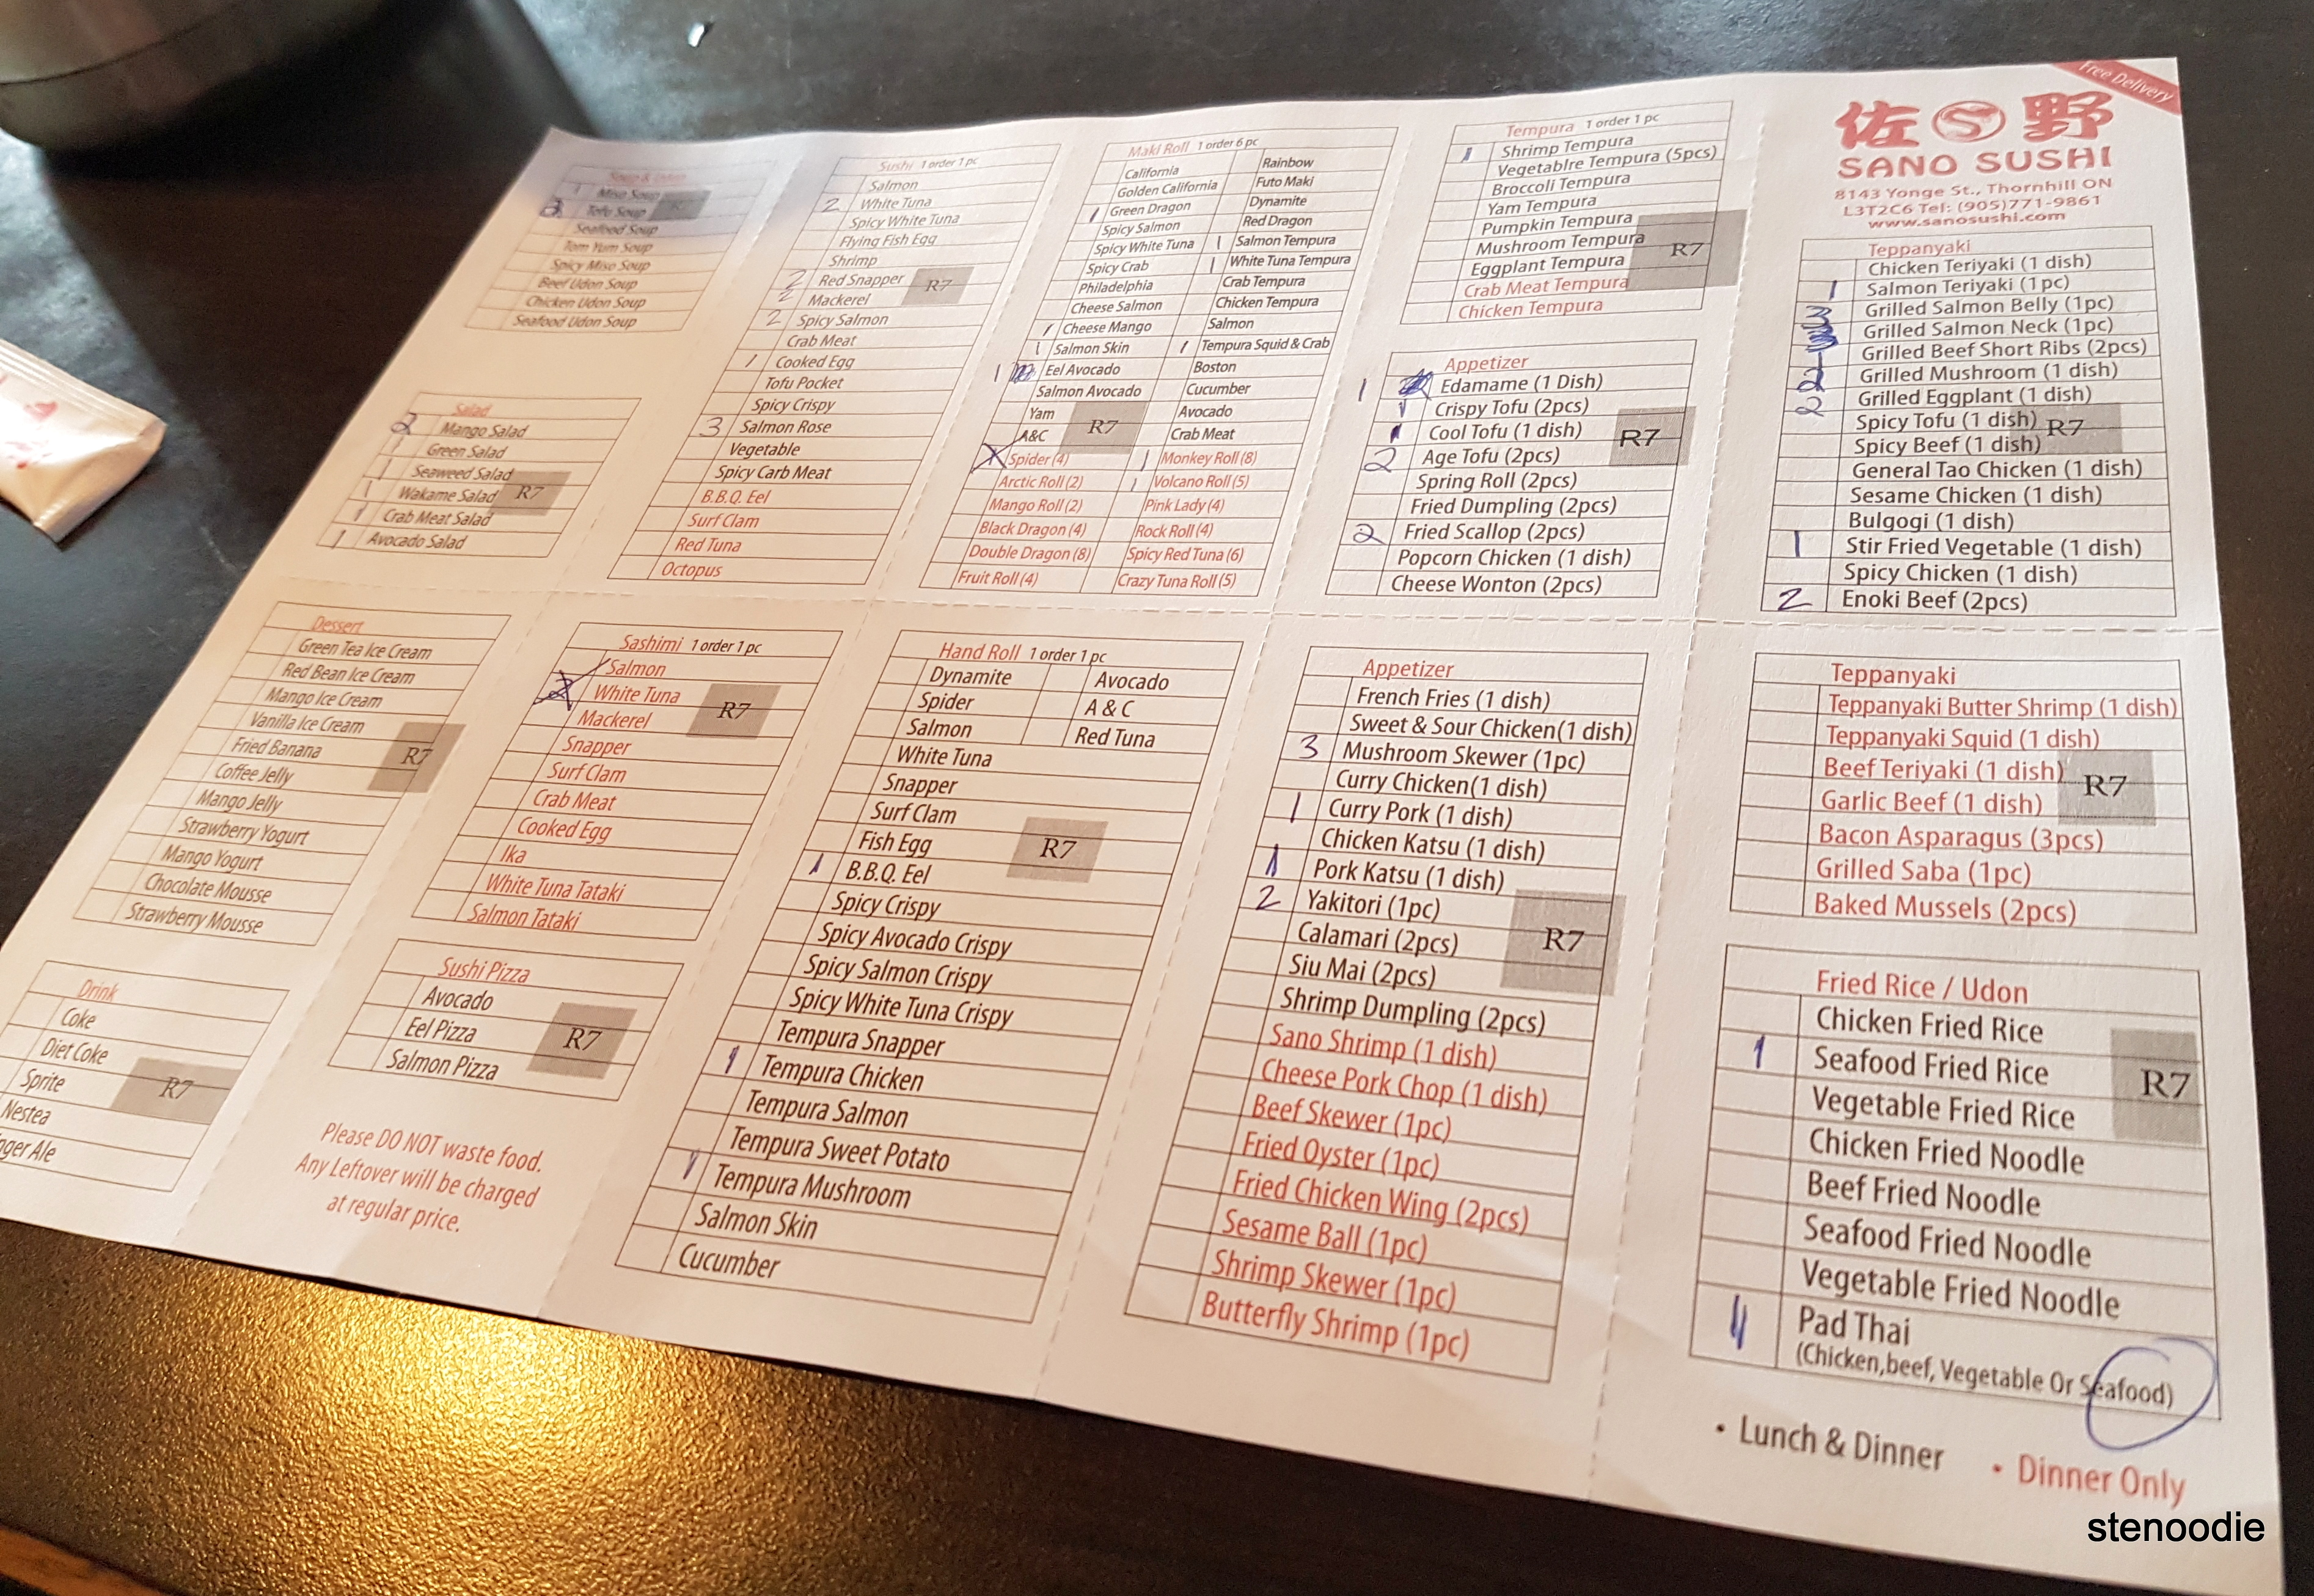 Sano Sushi all-you-can-eat lunch and dinner ordering sheet